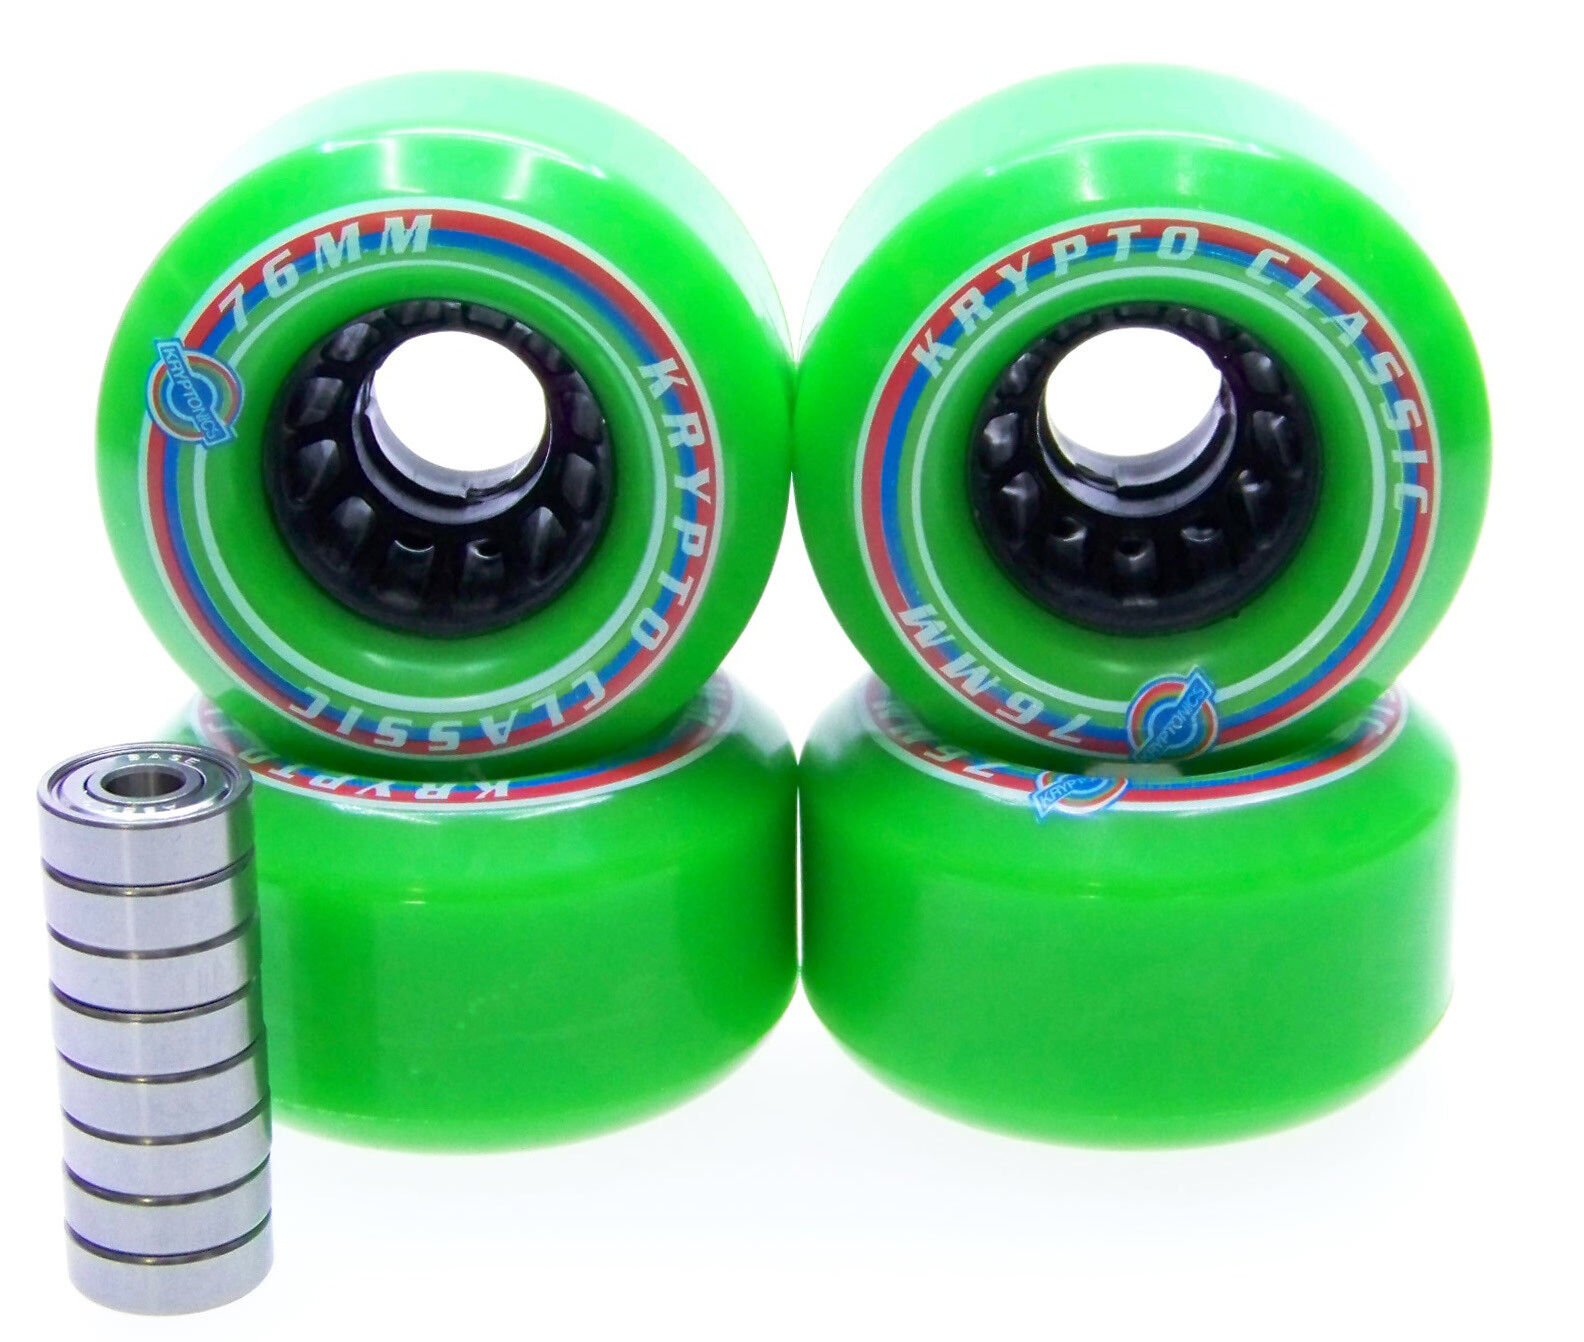 Longboard Rollers KRYPTONICS CLASSIC 2.99in  82A ABEC Bearing Set Replacement  healthy